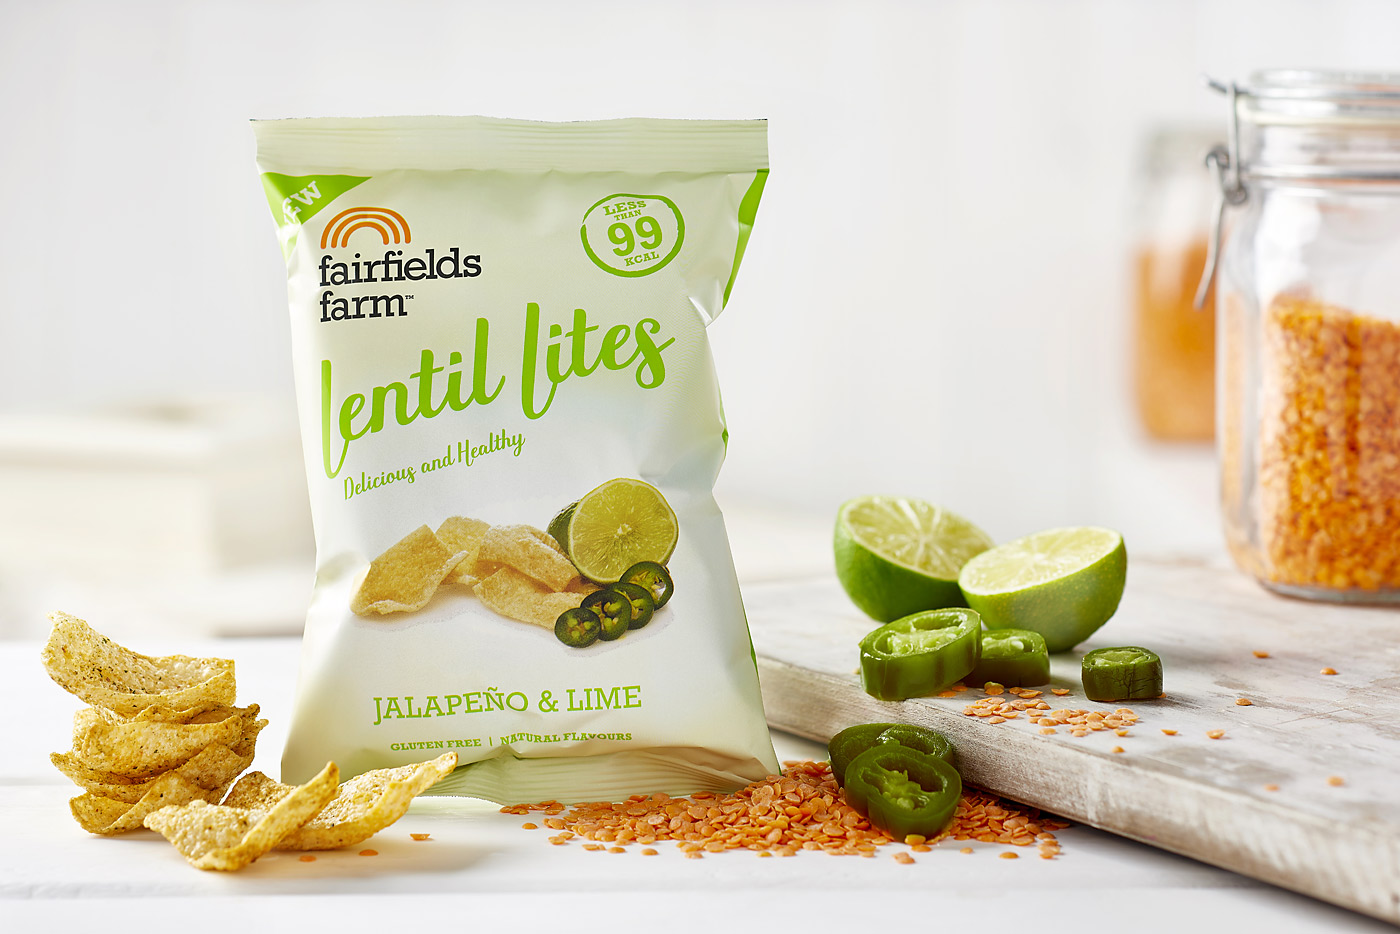 Fairfields Lentil Lites, jalapeno and lime flavour. Packshot by CliQQ Photography.